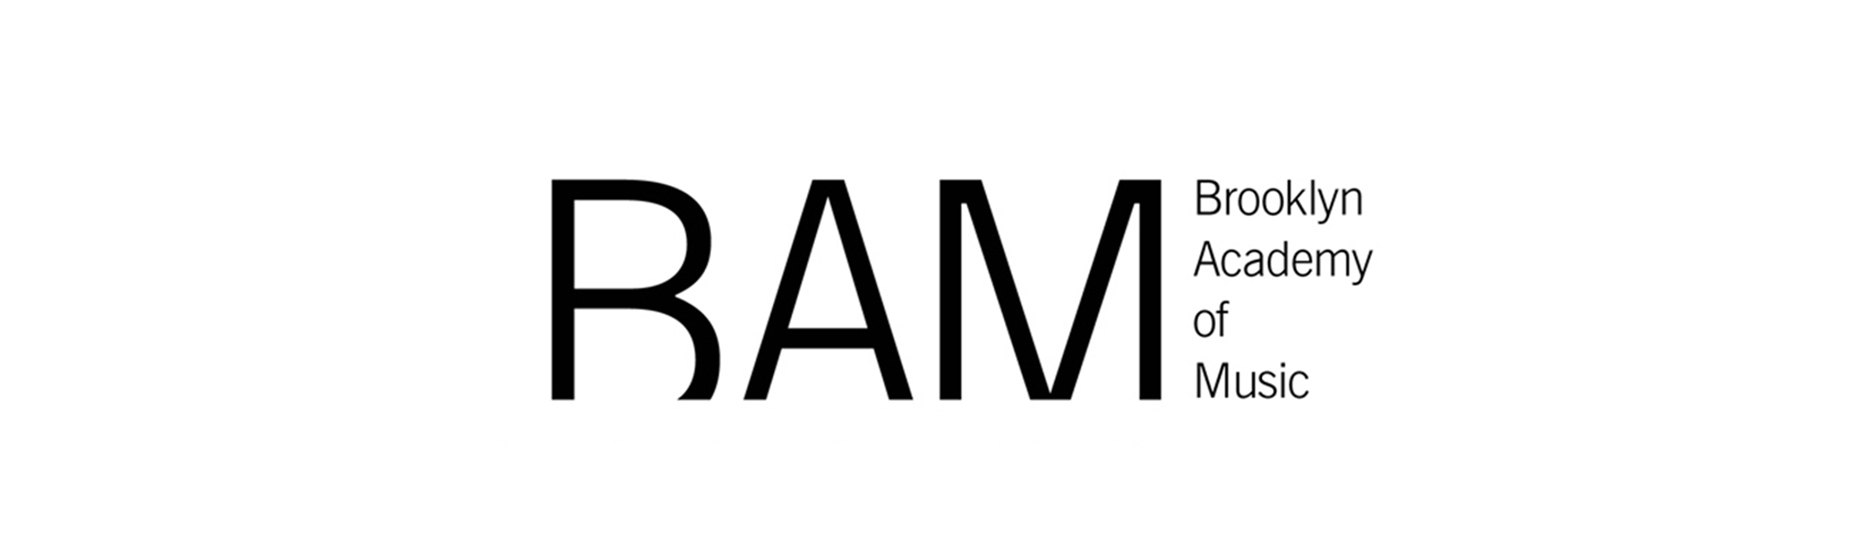 BAMlOGO copy.jpg